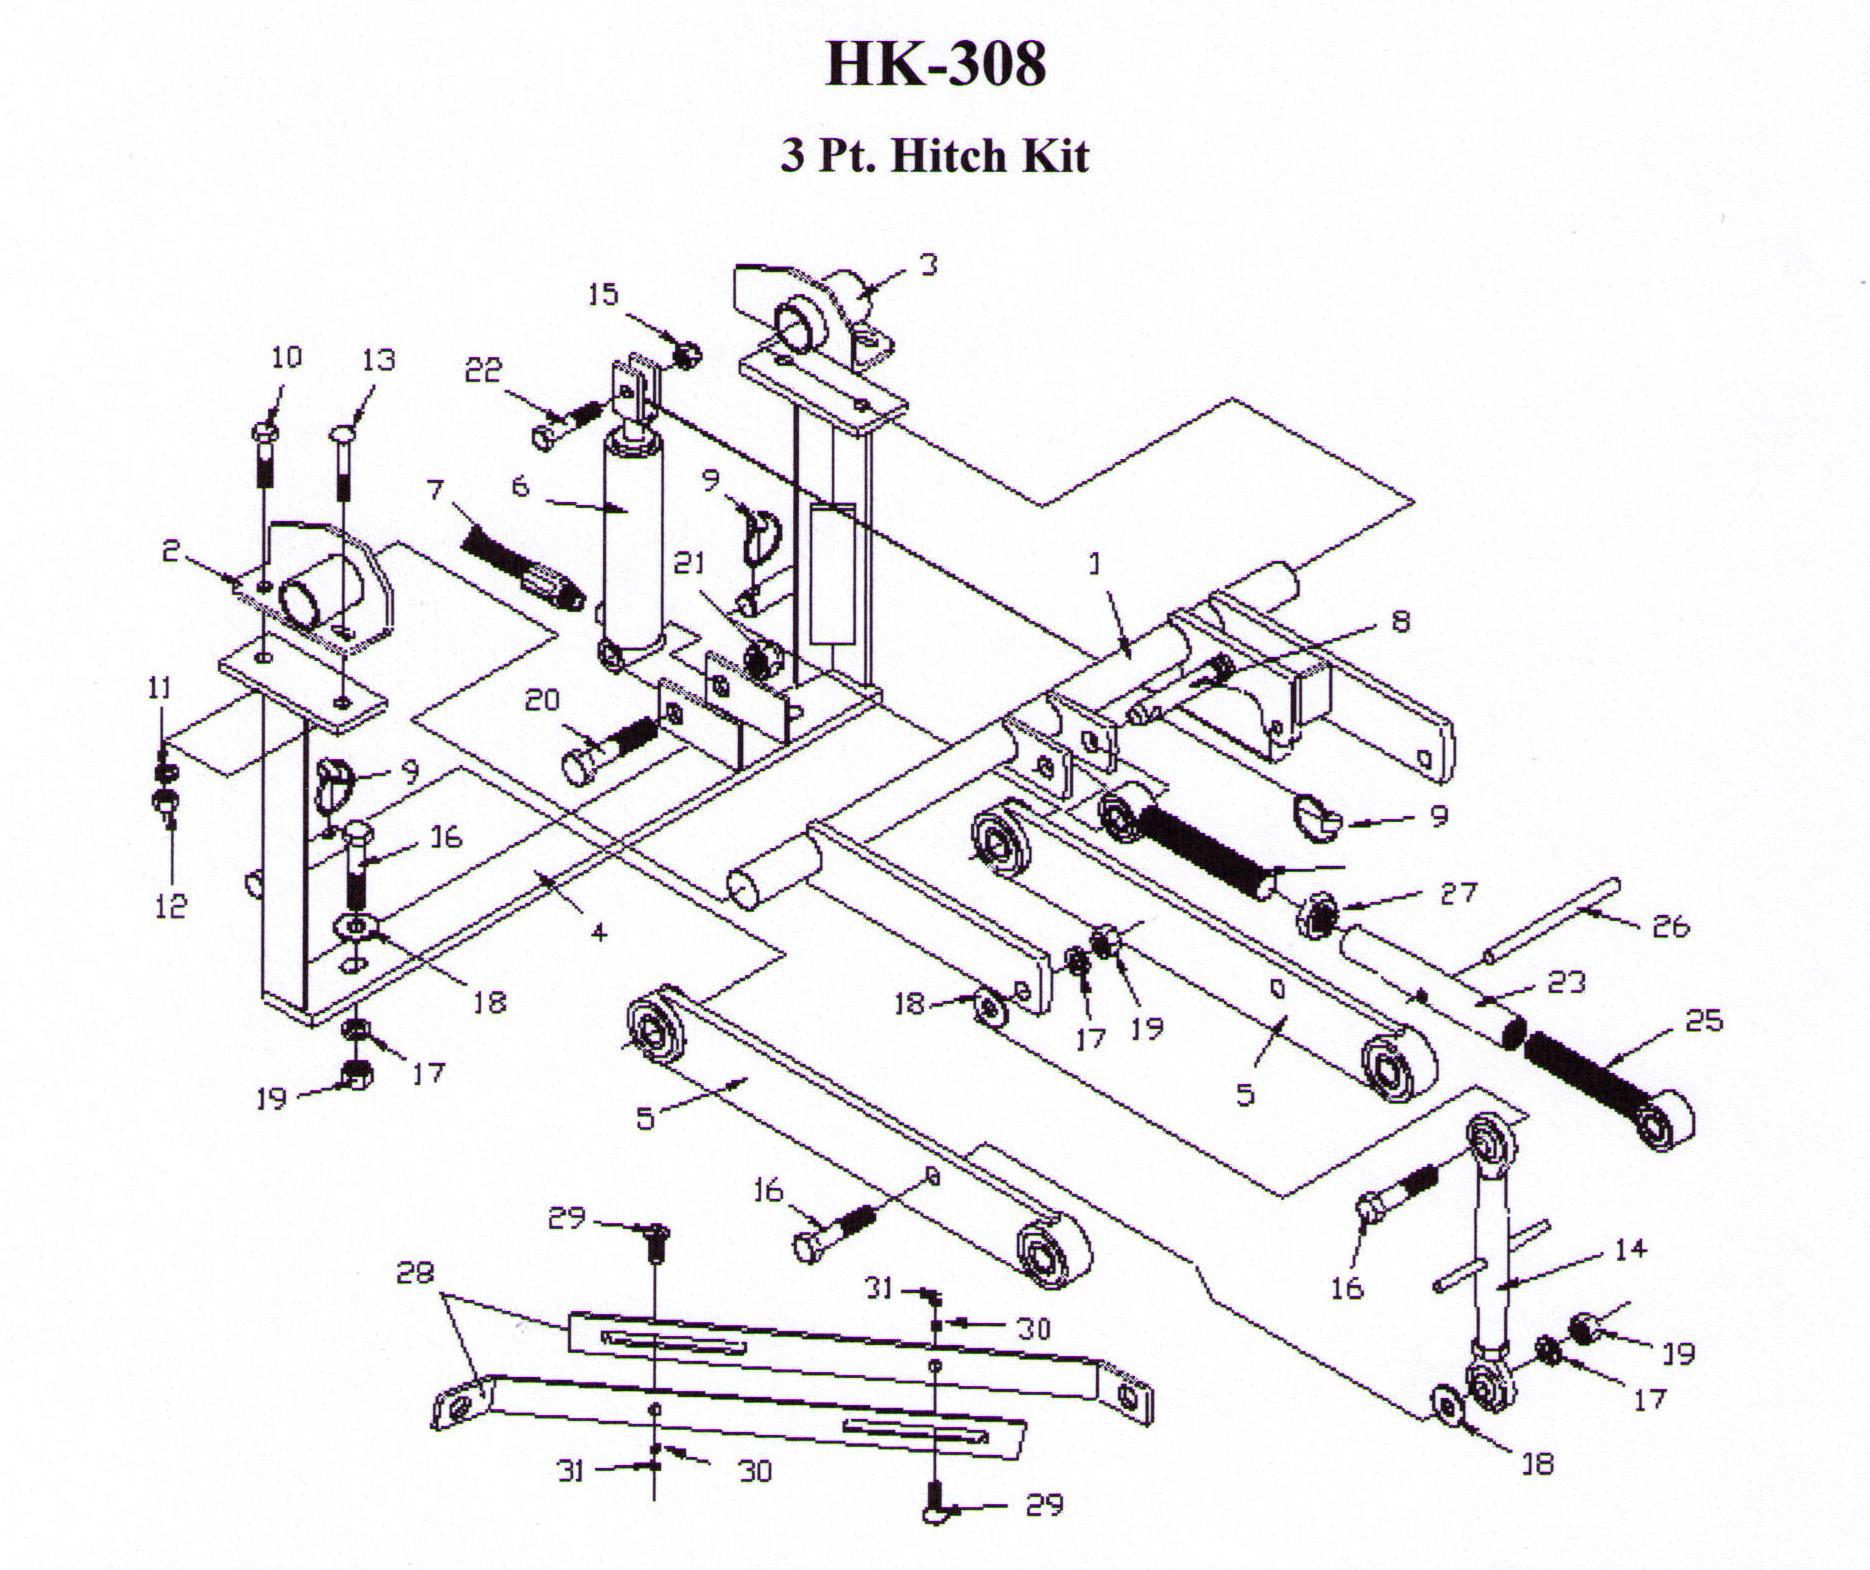 yanmar starter wiring diagram with Delco Remy 1101355 Wiring Diagram on Glow Plug Timer Circuit in addition Tracctor 5 Wire Ignition Switch Diagram as well Viewtopic in addition Koblingsskjema Dynamo moreover Starter Crank Fuel Shutoff Solenoid Wiring.